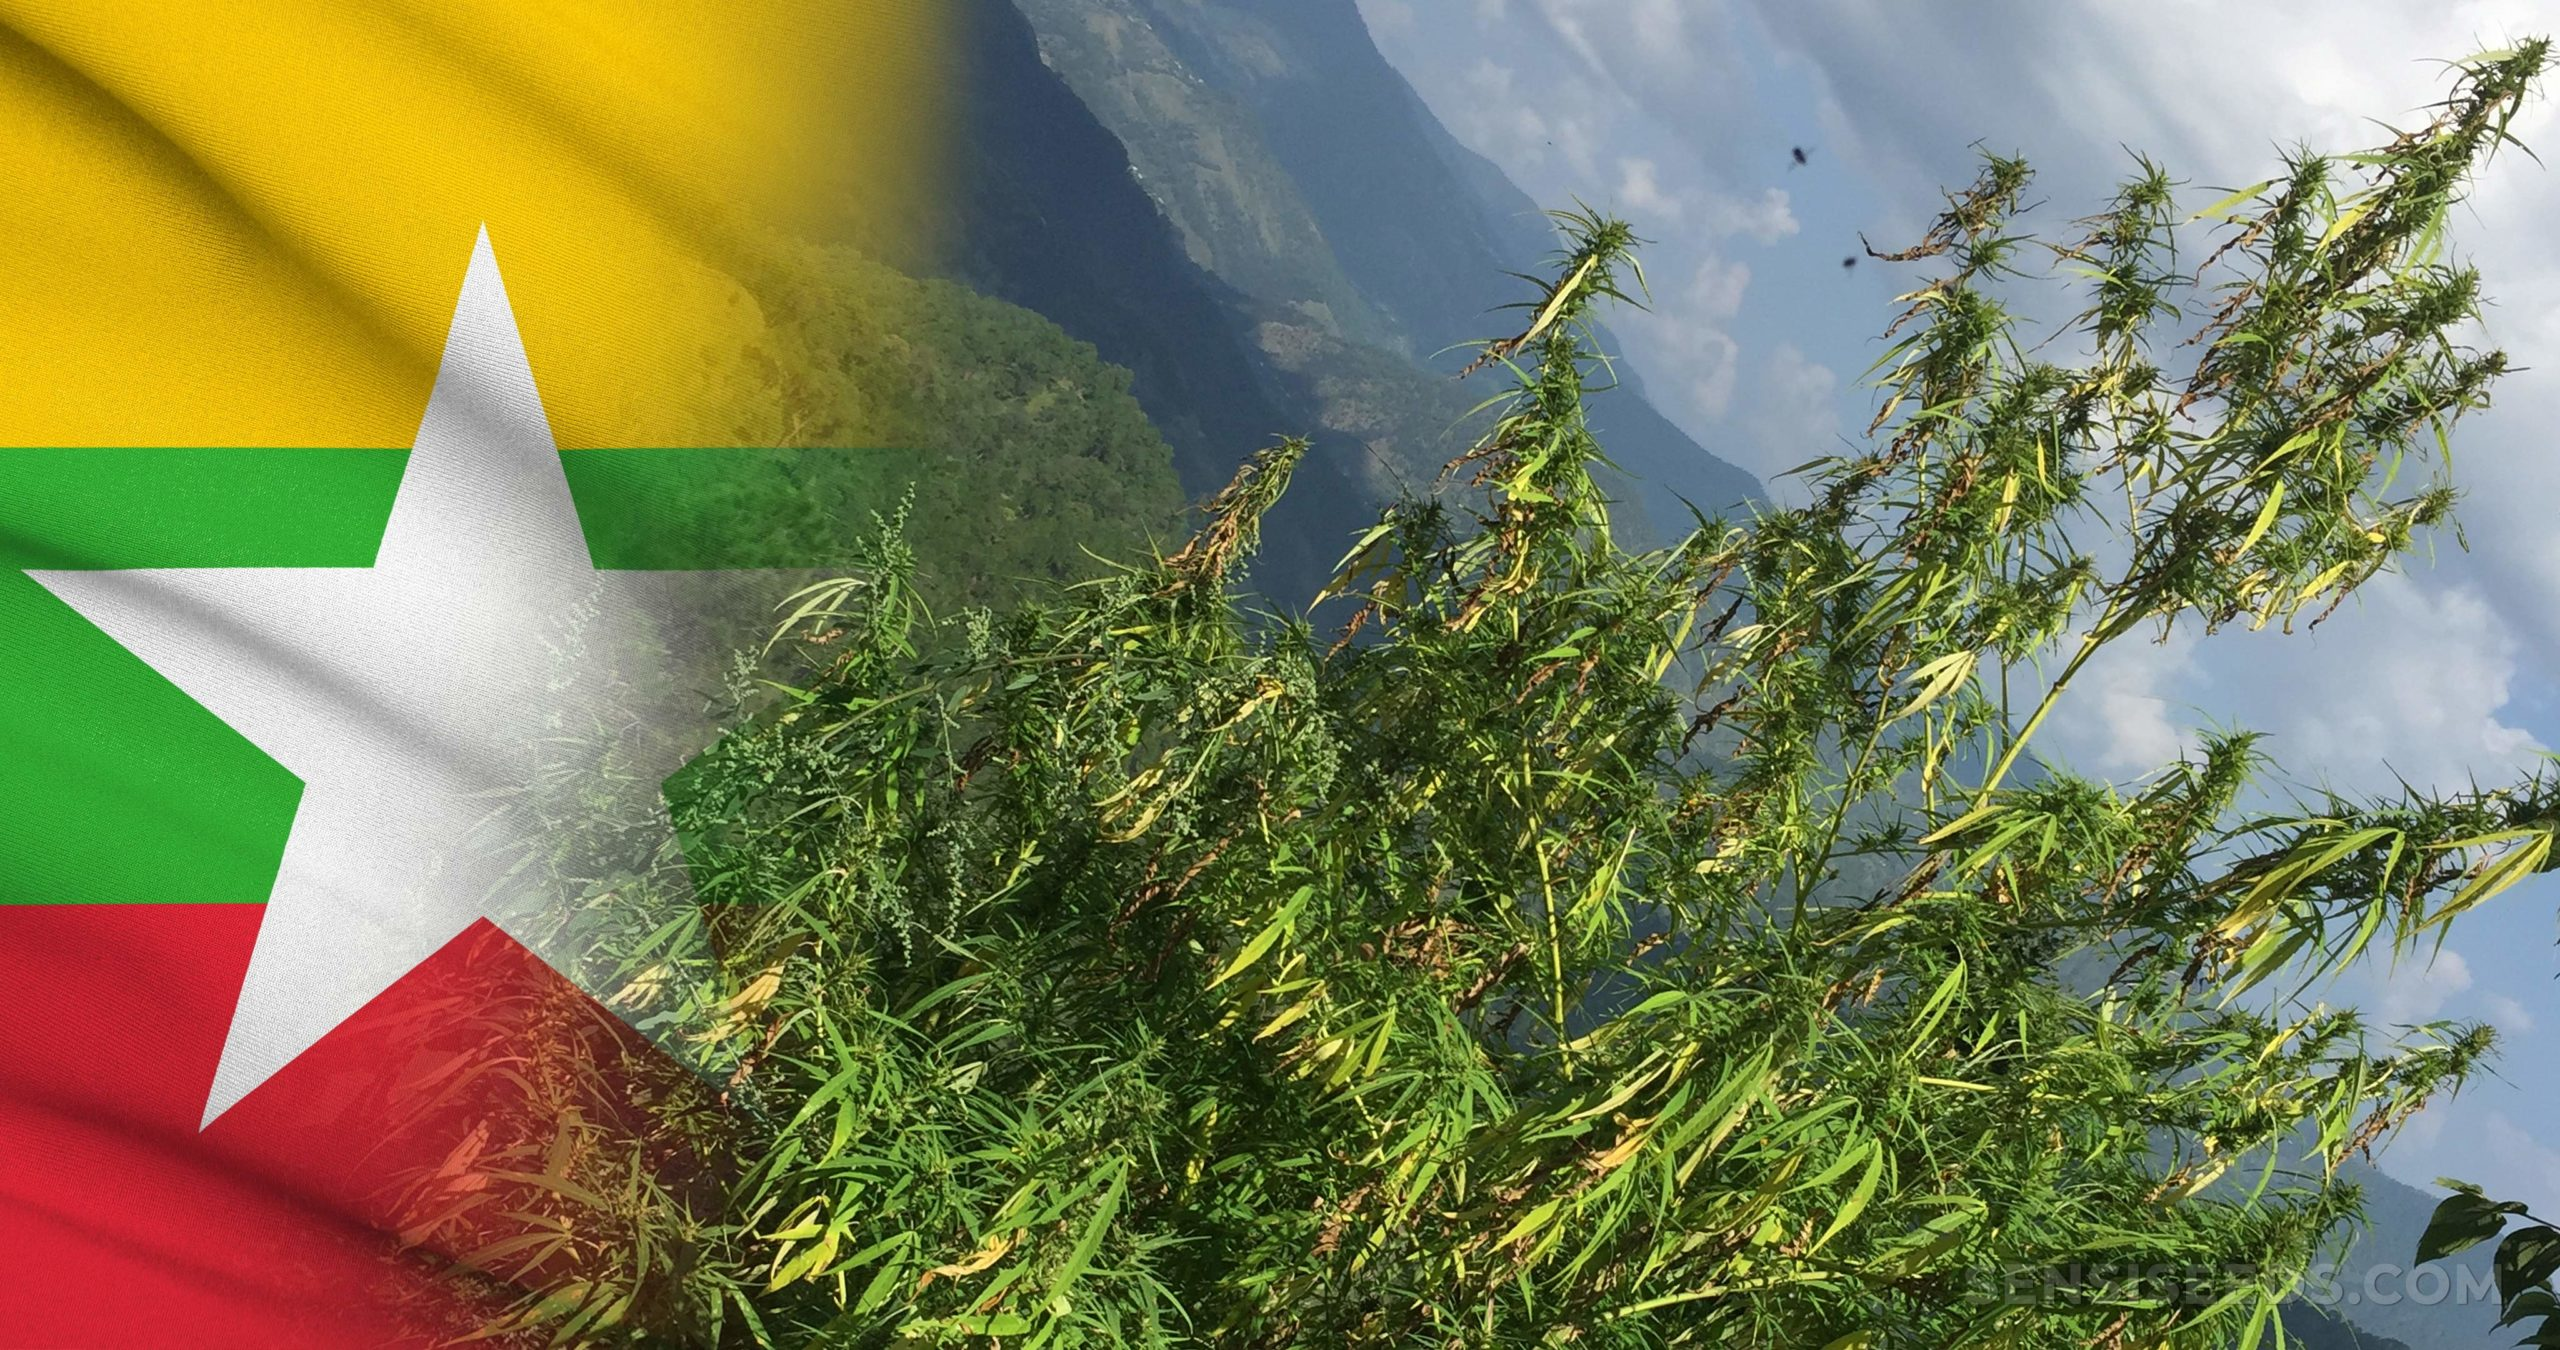 The Myanmar flag and a cannabis plant